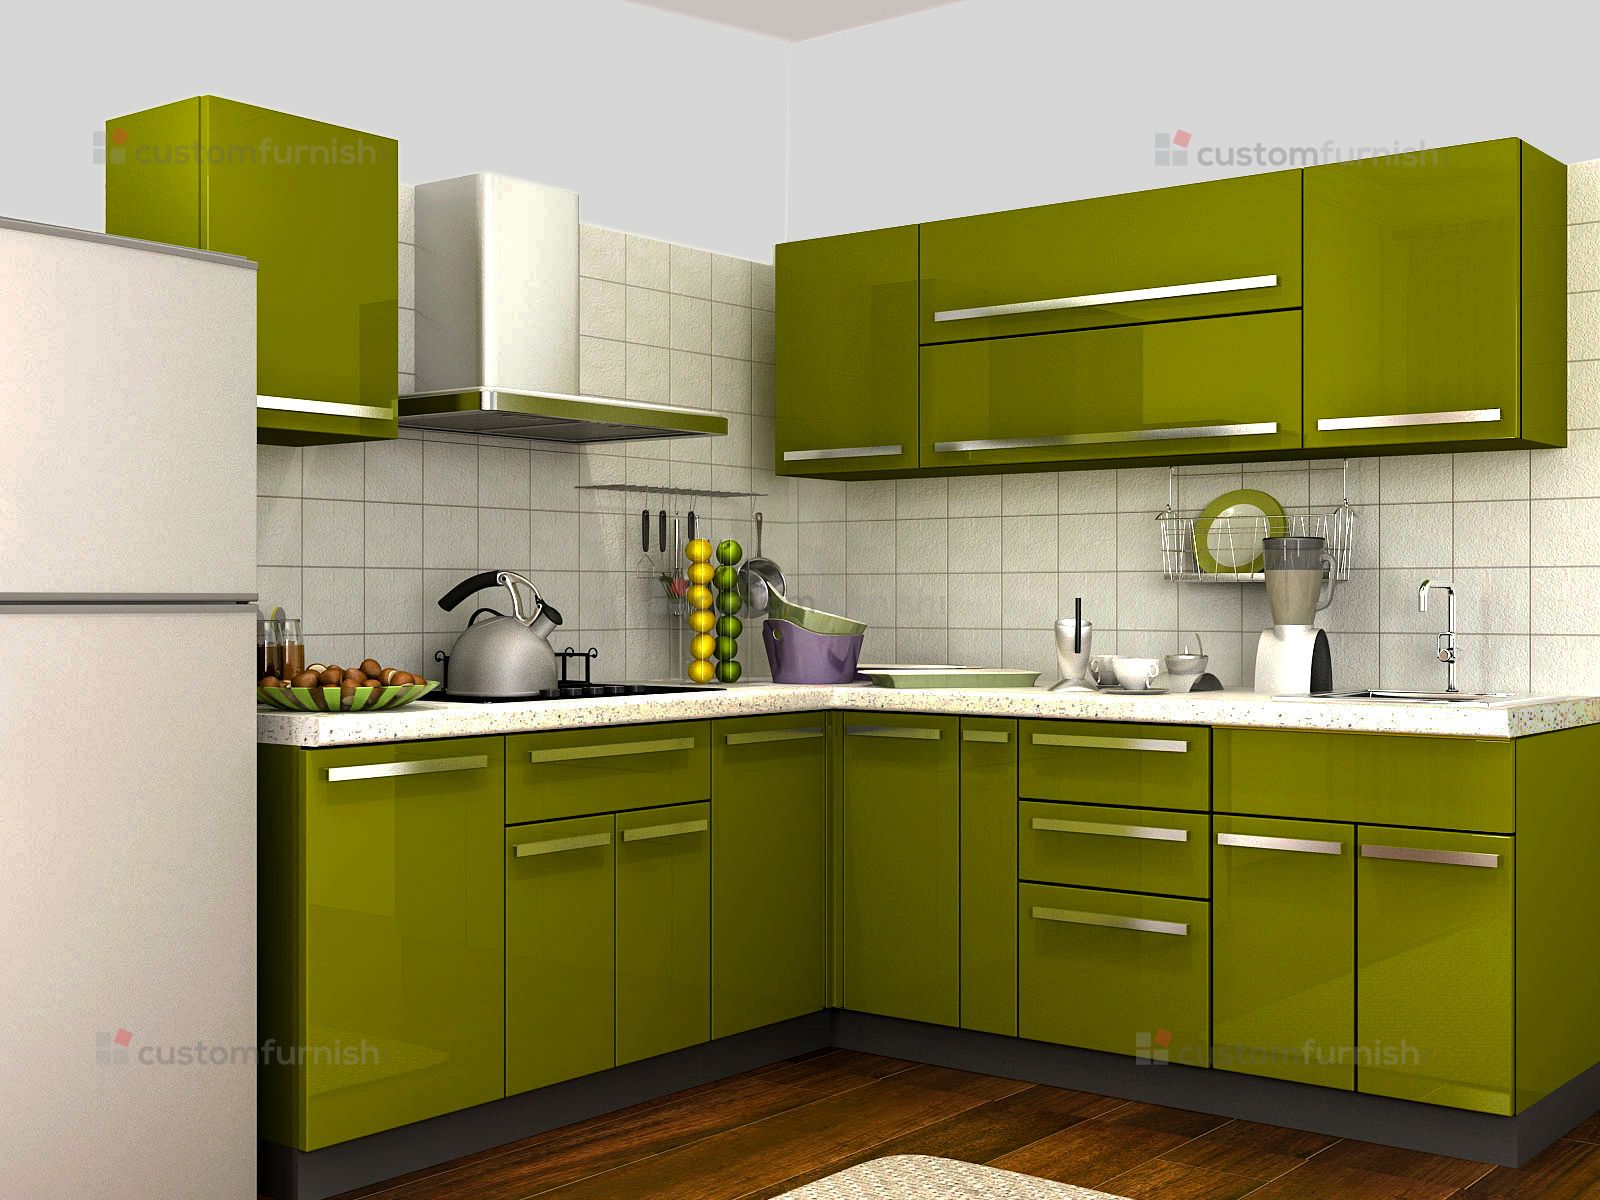 Modular Kitchen Design For Small Area In India 5 Reasons Why Modular Kitchen Designs Are The Latest Trend In Home